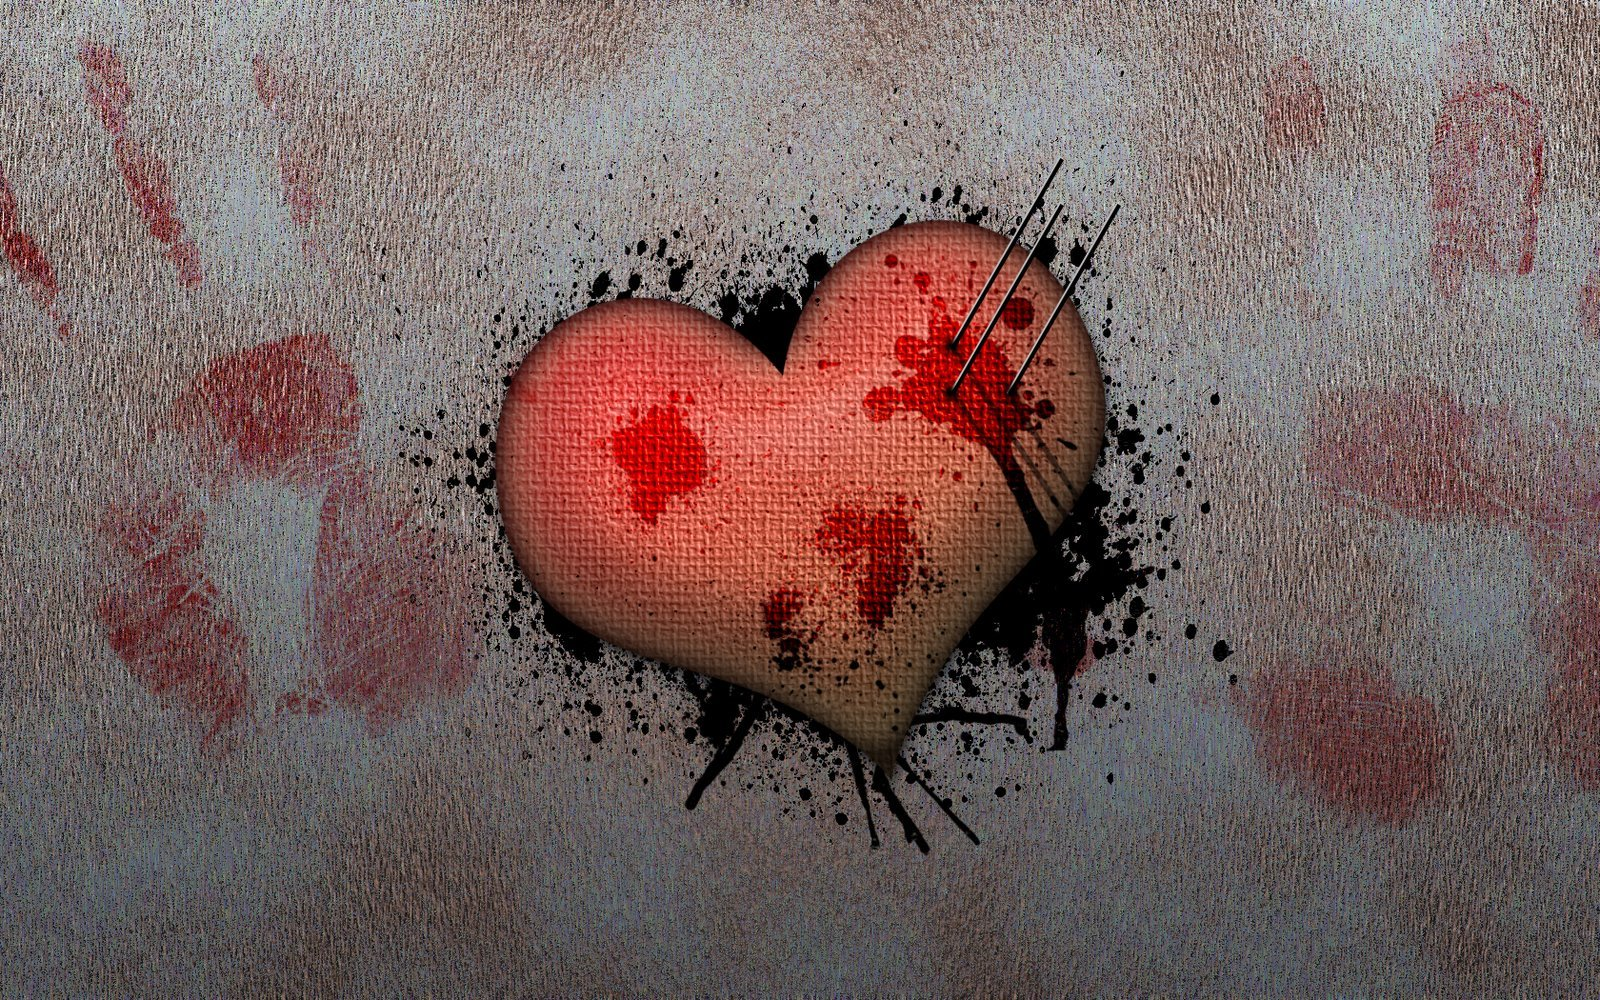 Cute Wallpapers For Cell Phones Free Broken Heart Wallpapers Hd Wallpapers Pulse